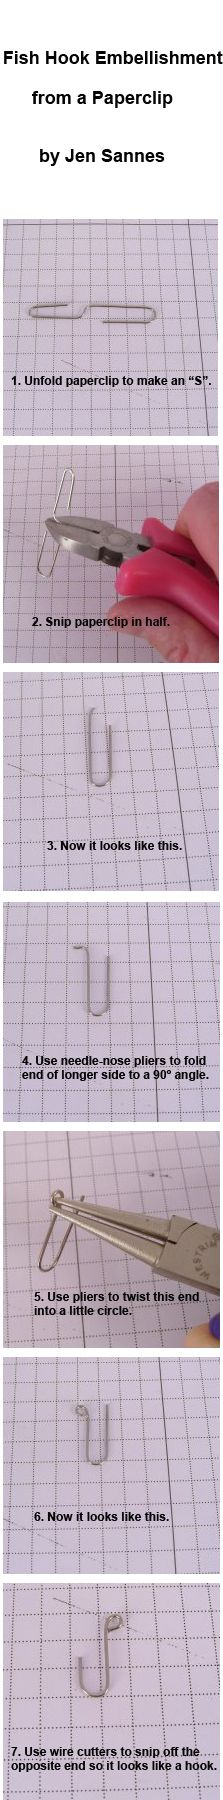 How to make a fish hook embellishment from a paperclip - by Jen Sannes Card Making Tips, Card Making Techniques, Diy Hooks, Survival Items, Operation Christmas Child, Fishing Stuff, Christmas Crafts For Kids, Wire Art, Fish Hook